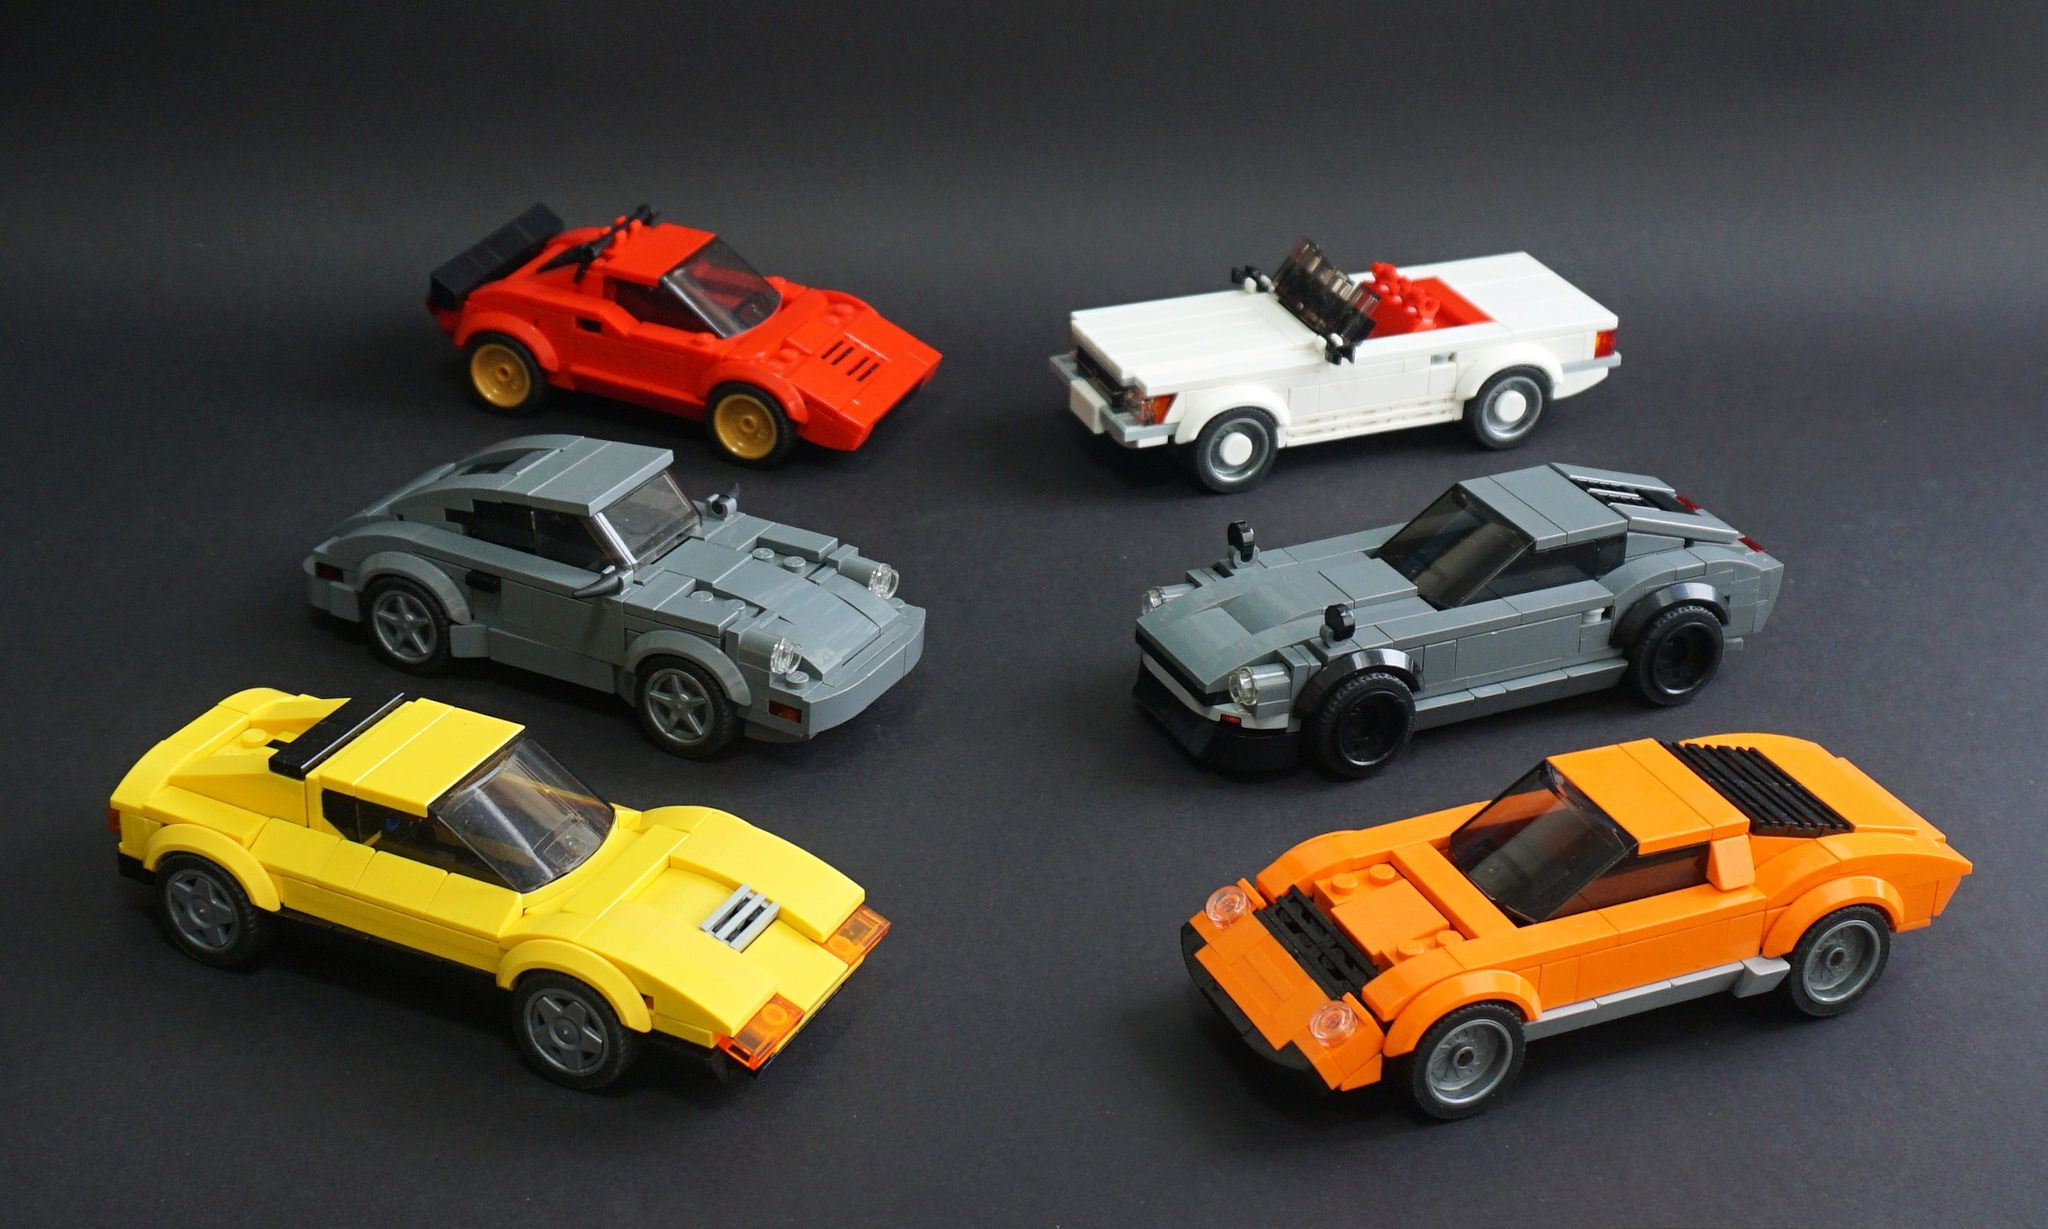 Lego Speed Champions for Adults 01 Lego speed